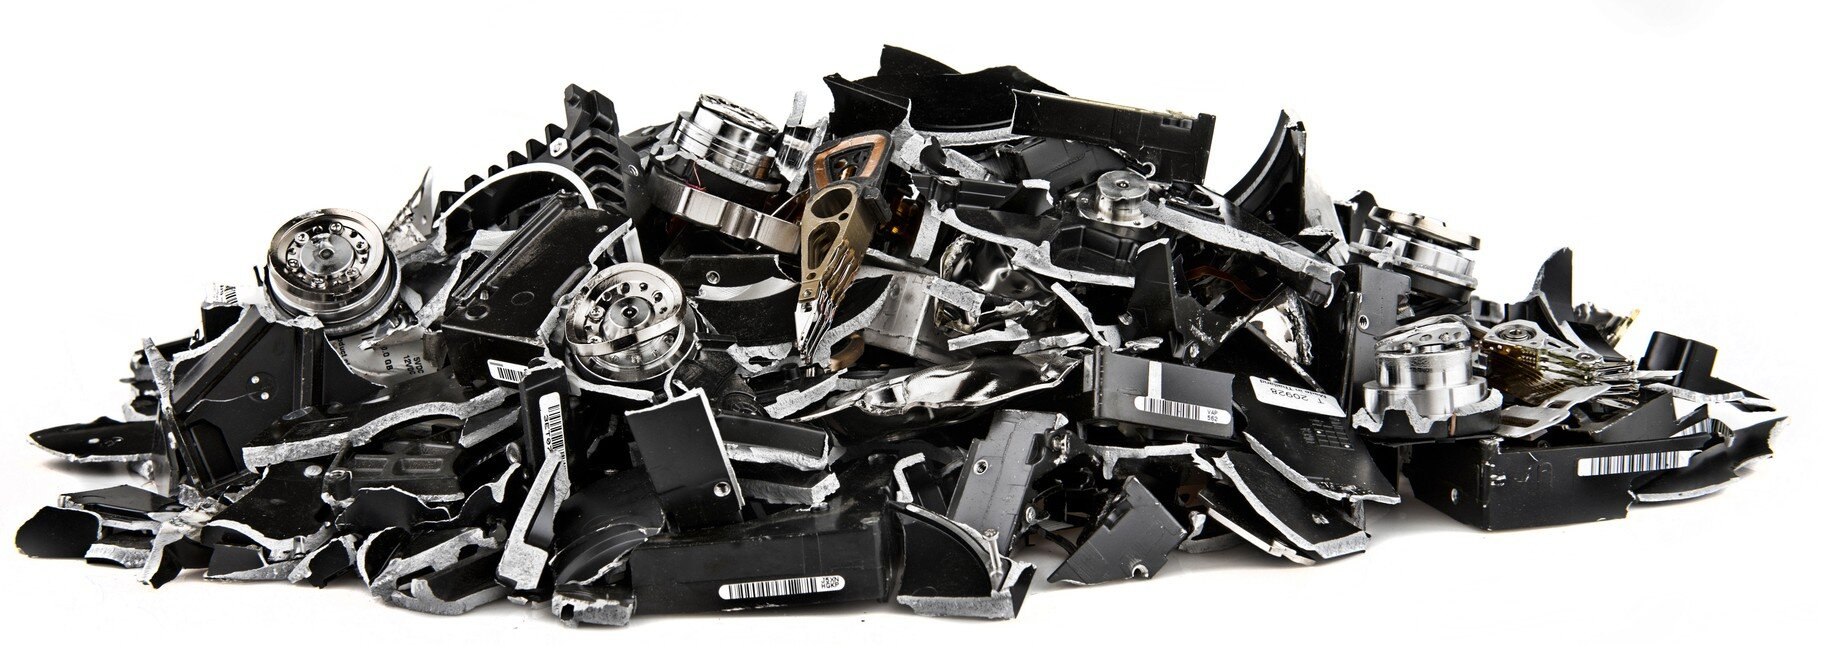 hard drive media destruction